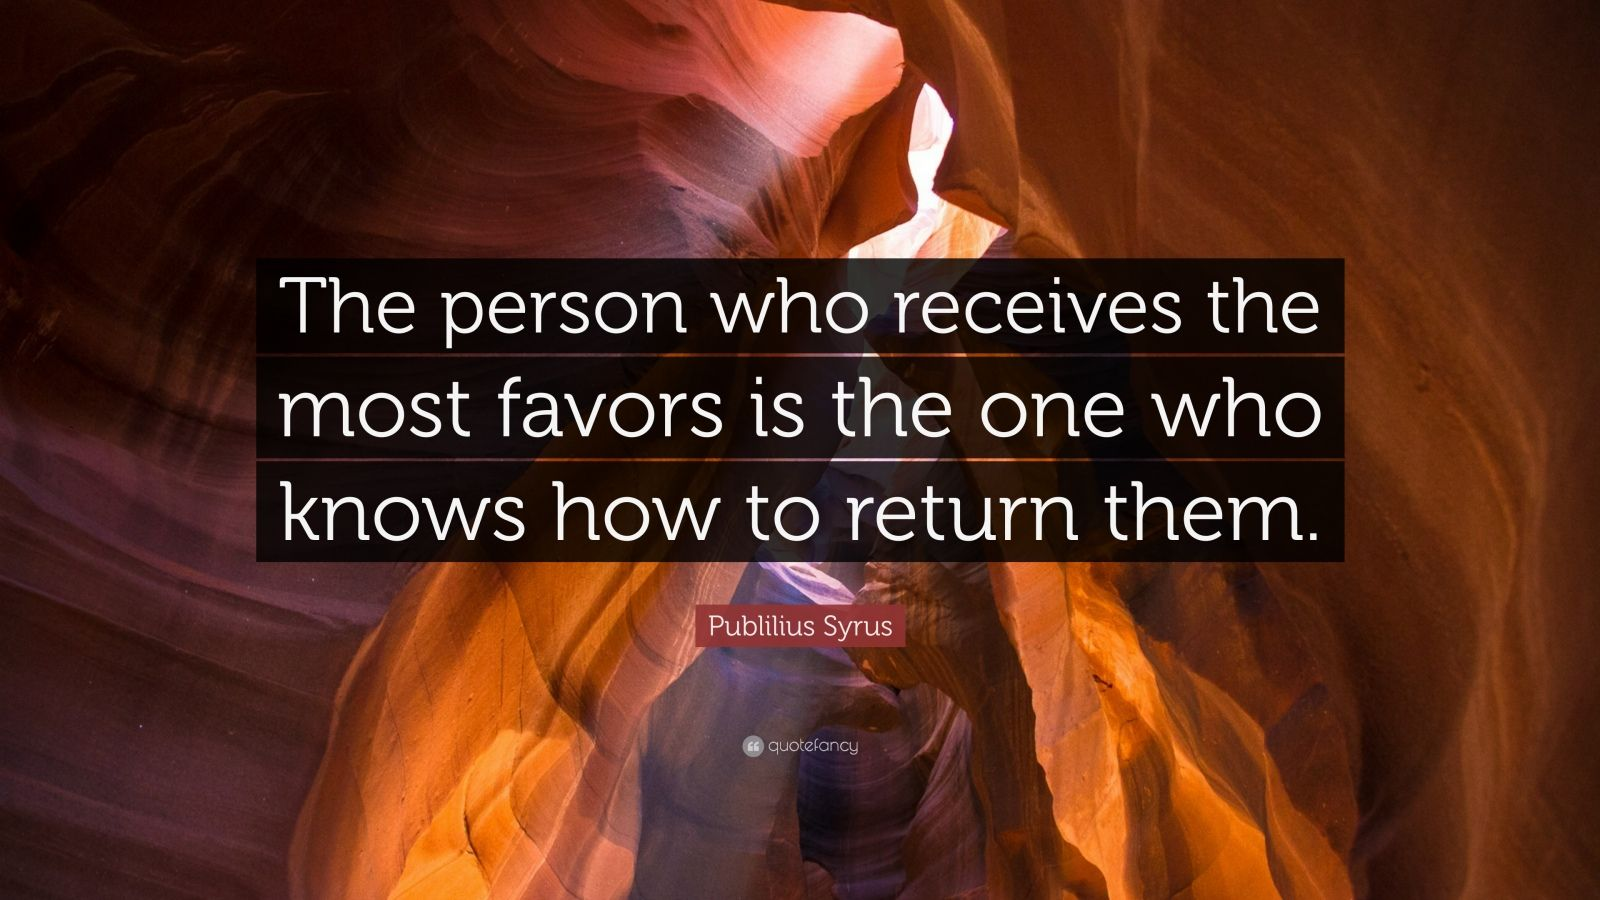 """Publilius Syrus Quote: """"The person who receives the most favors is the one who knows how to return them."""""""